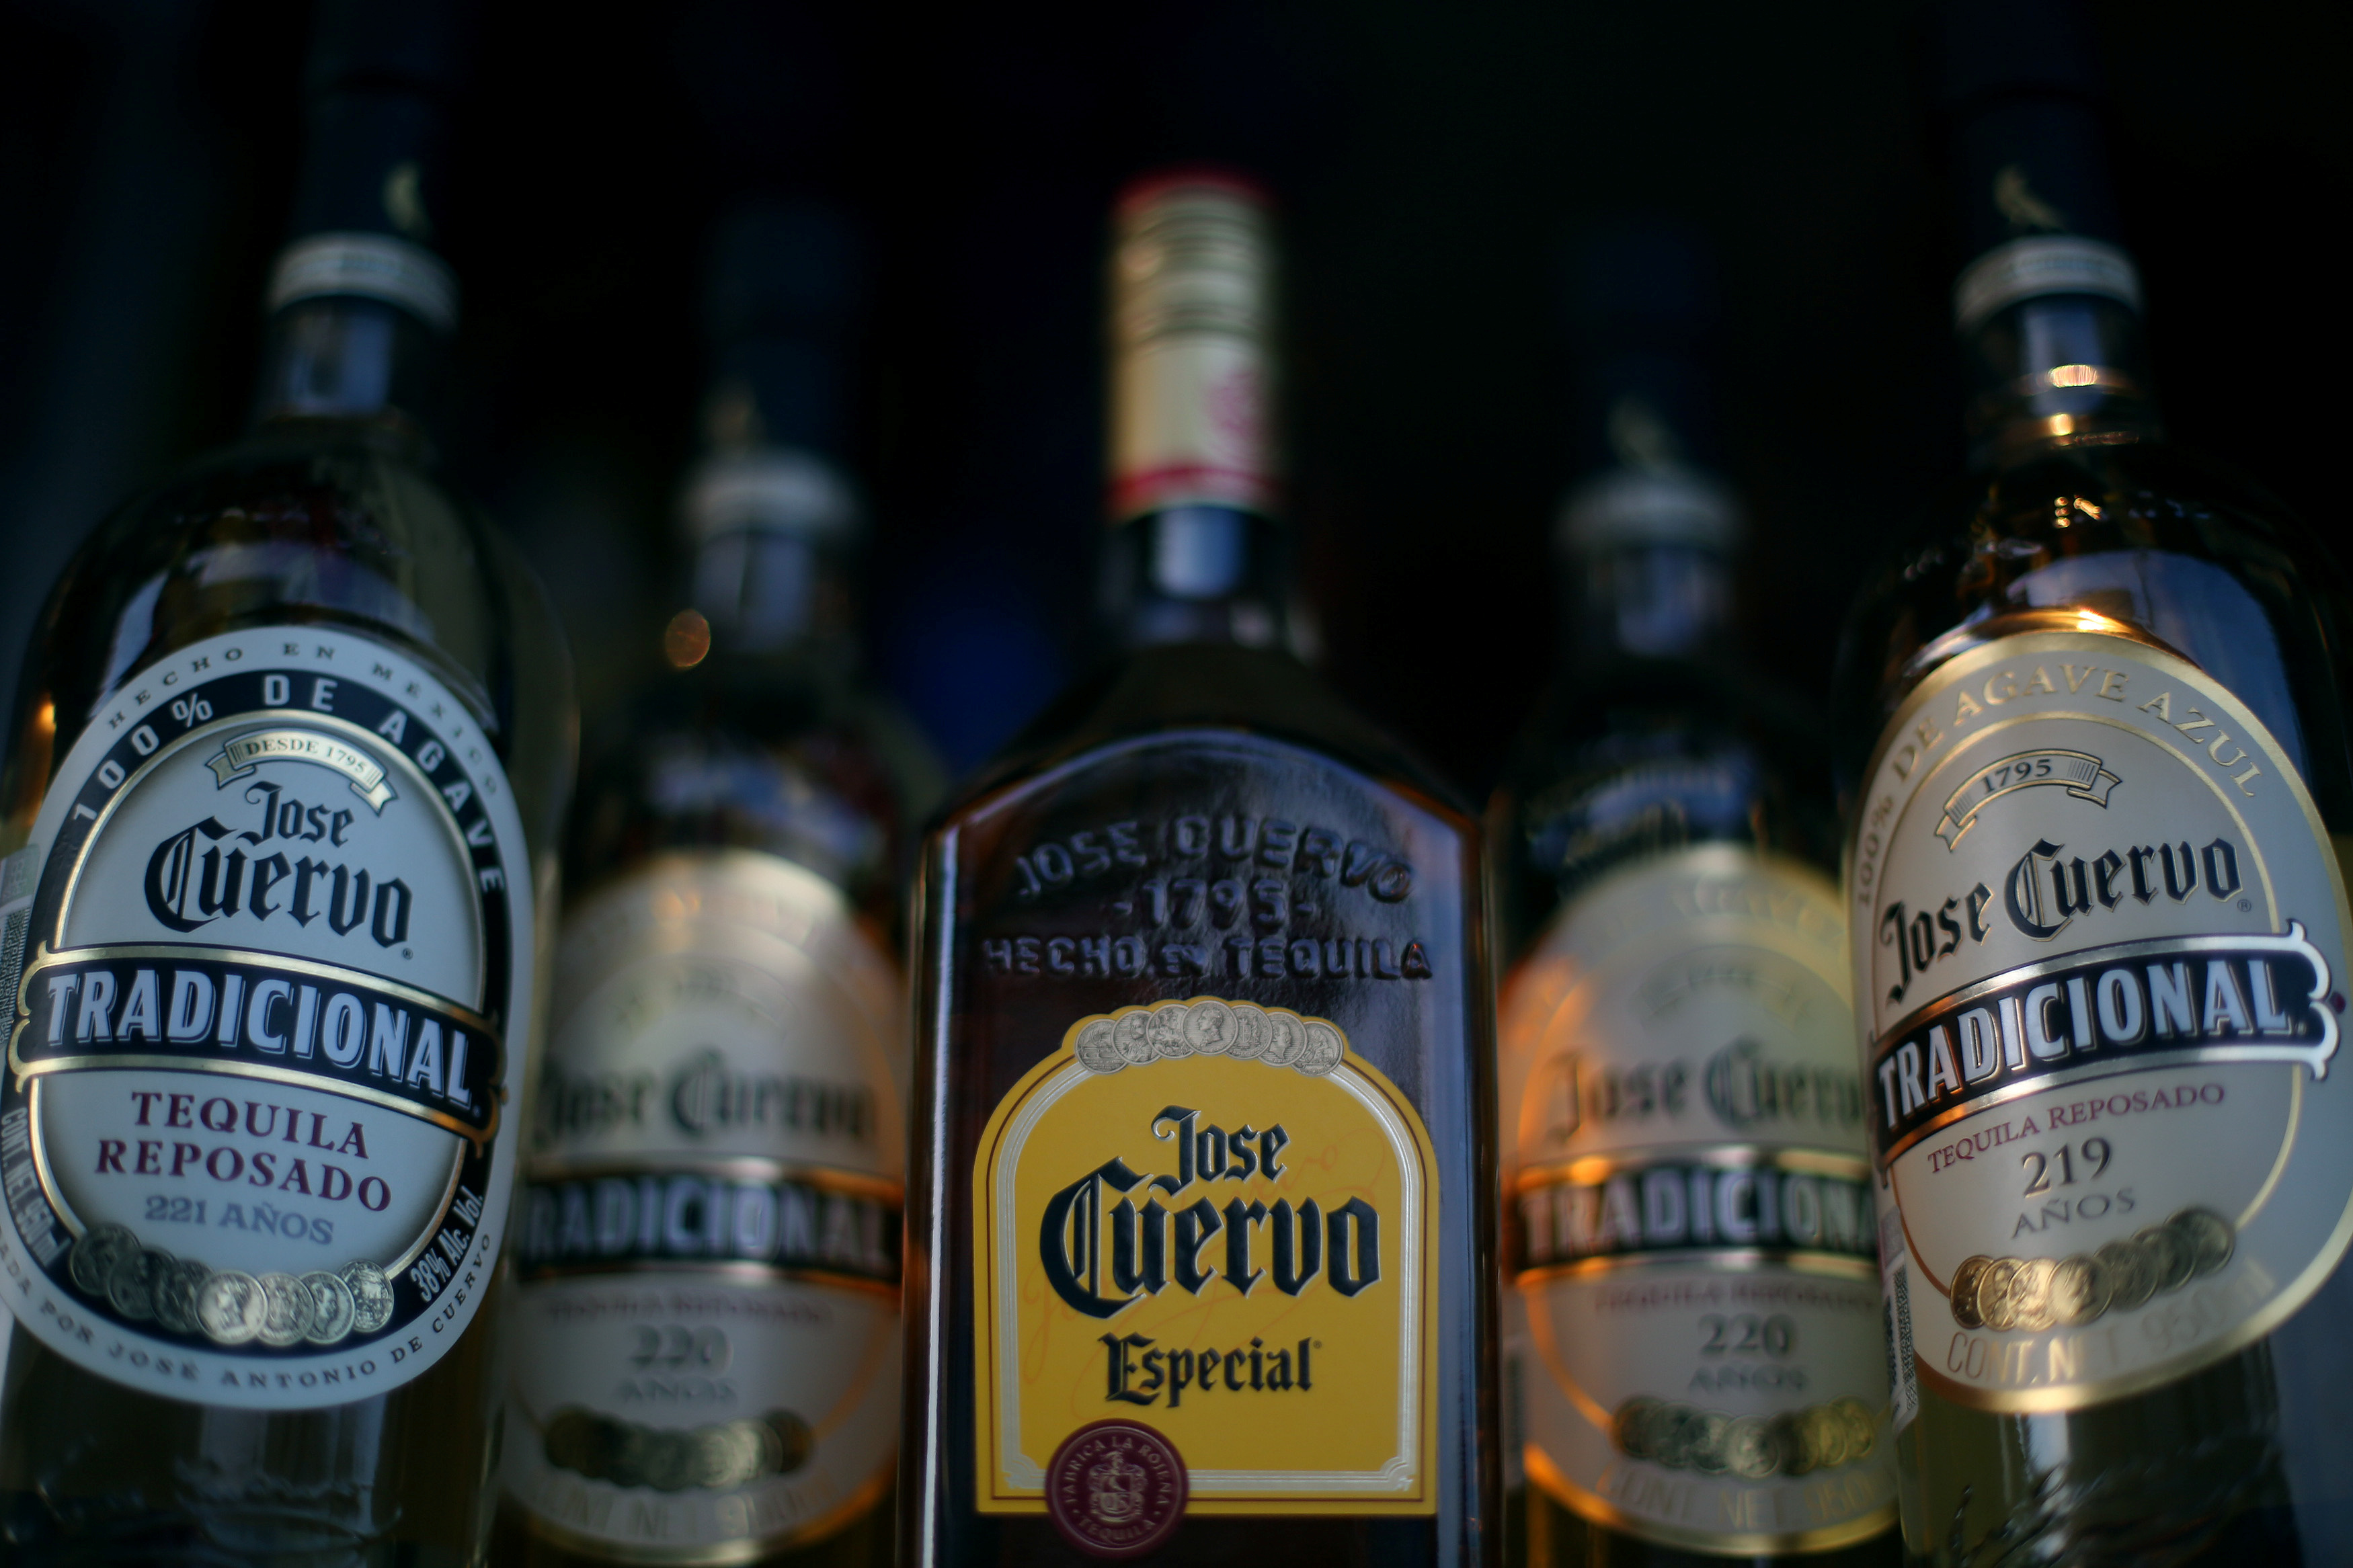 Bottles of Jose Cuervo Tequila rest on a shelf in Mexico City, Mexico, Feb. 8, 2017.